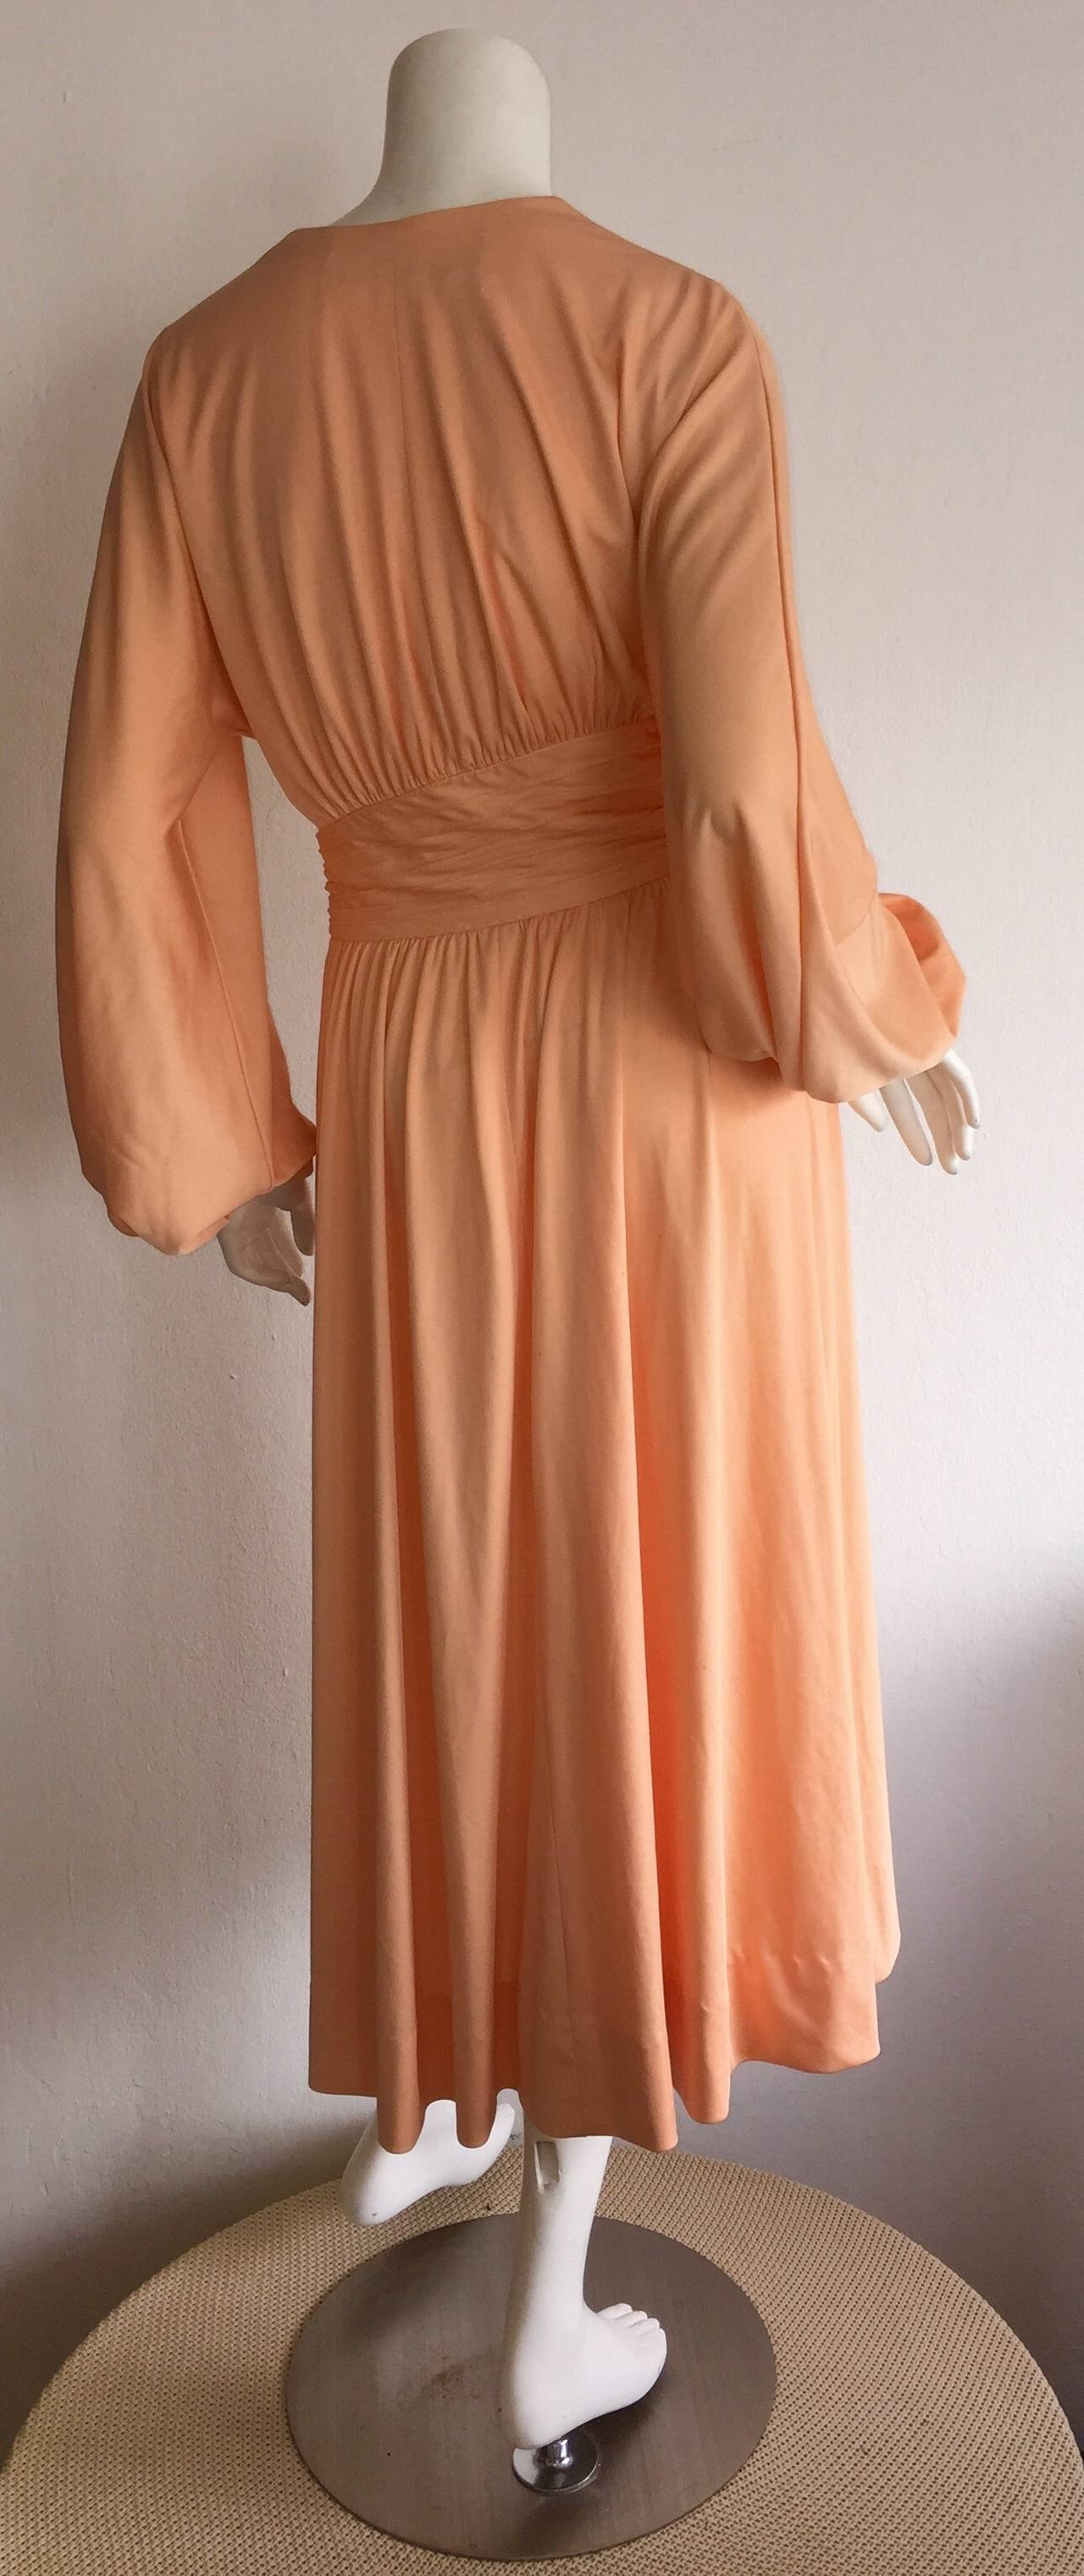 Orange Stunning Vintage Donald Brooks 1970s C Jersey Disco 70s Pink Wrap Dress For